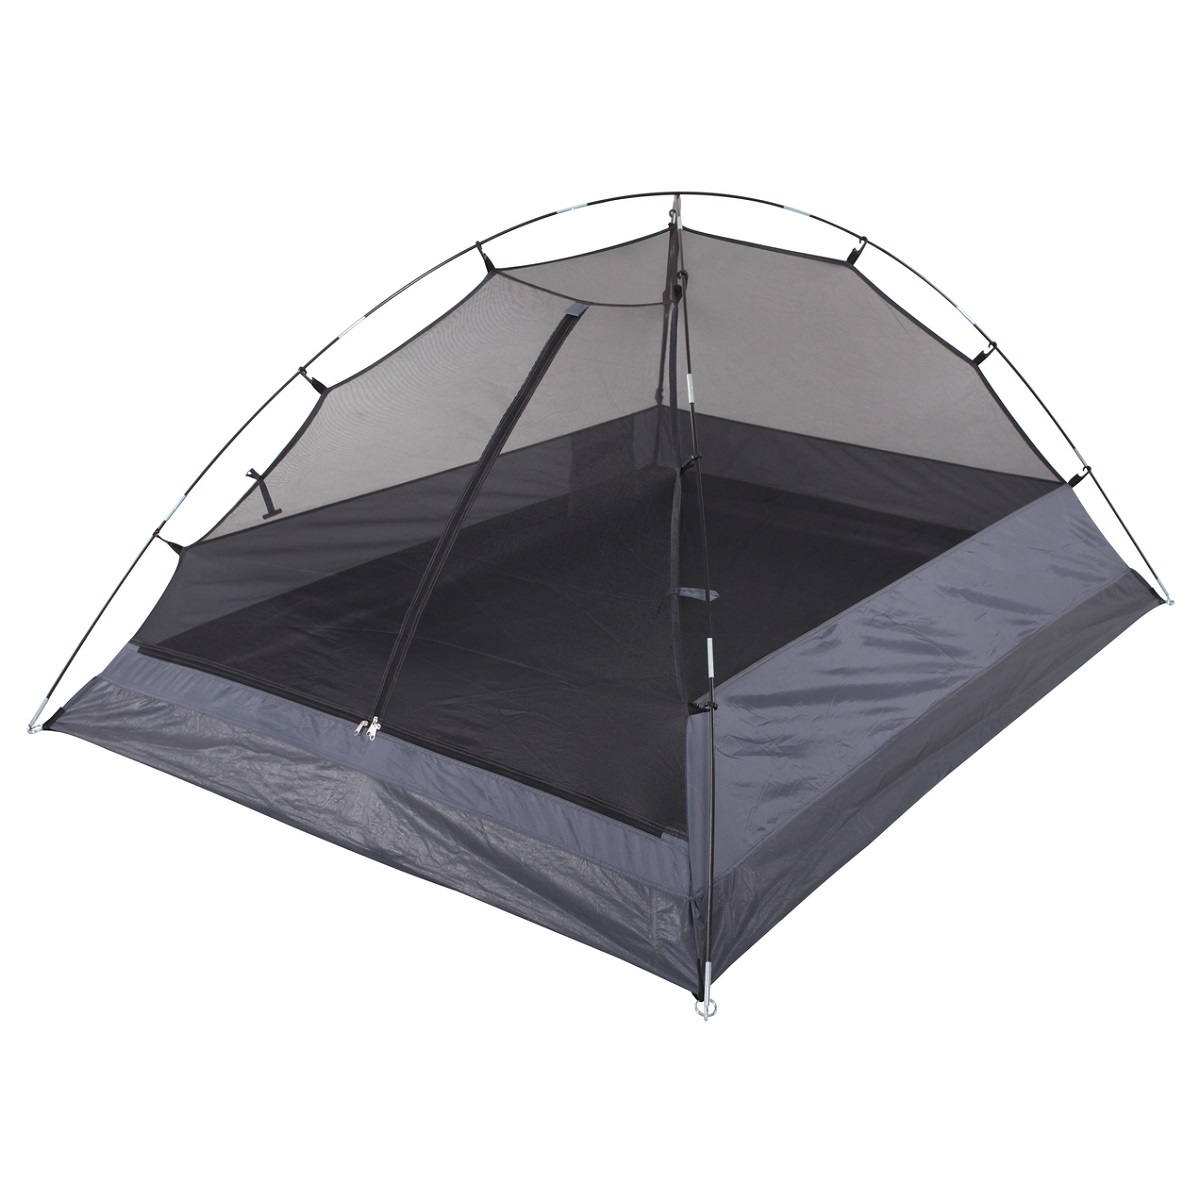 40%Sale  sc 1 st  Budget C&ing & Oztrail Genesis 2p Dome Tent 2 Persons tent u2013 Budget Camping